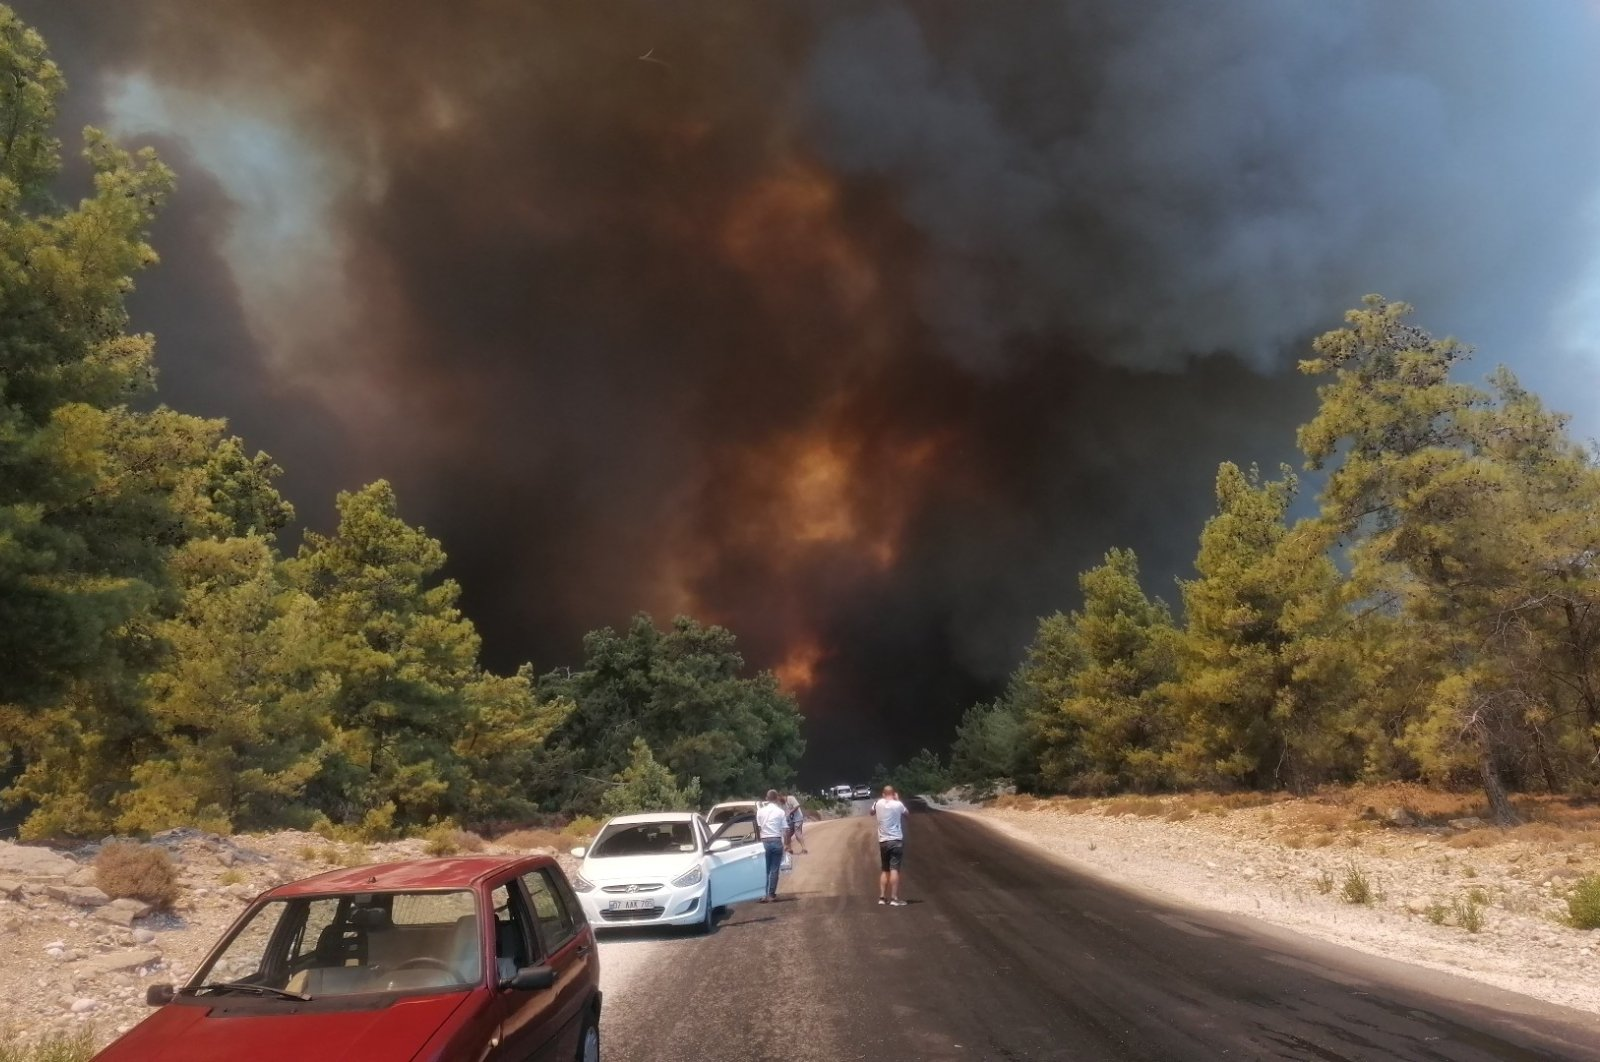 People watch as flames and a massive cloud of smoke cover a fire-hit area in Manavgat, Antalya, southern Turkey, July 28, 2021. (İHA PHOTO)